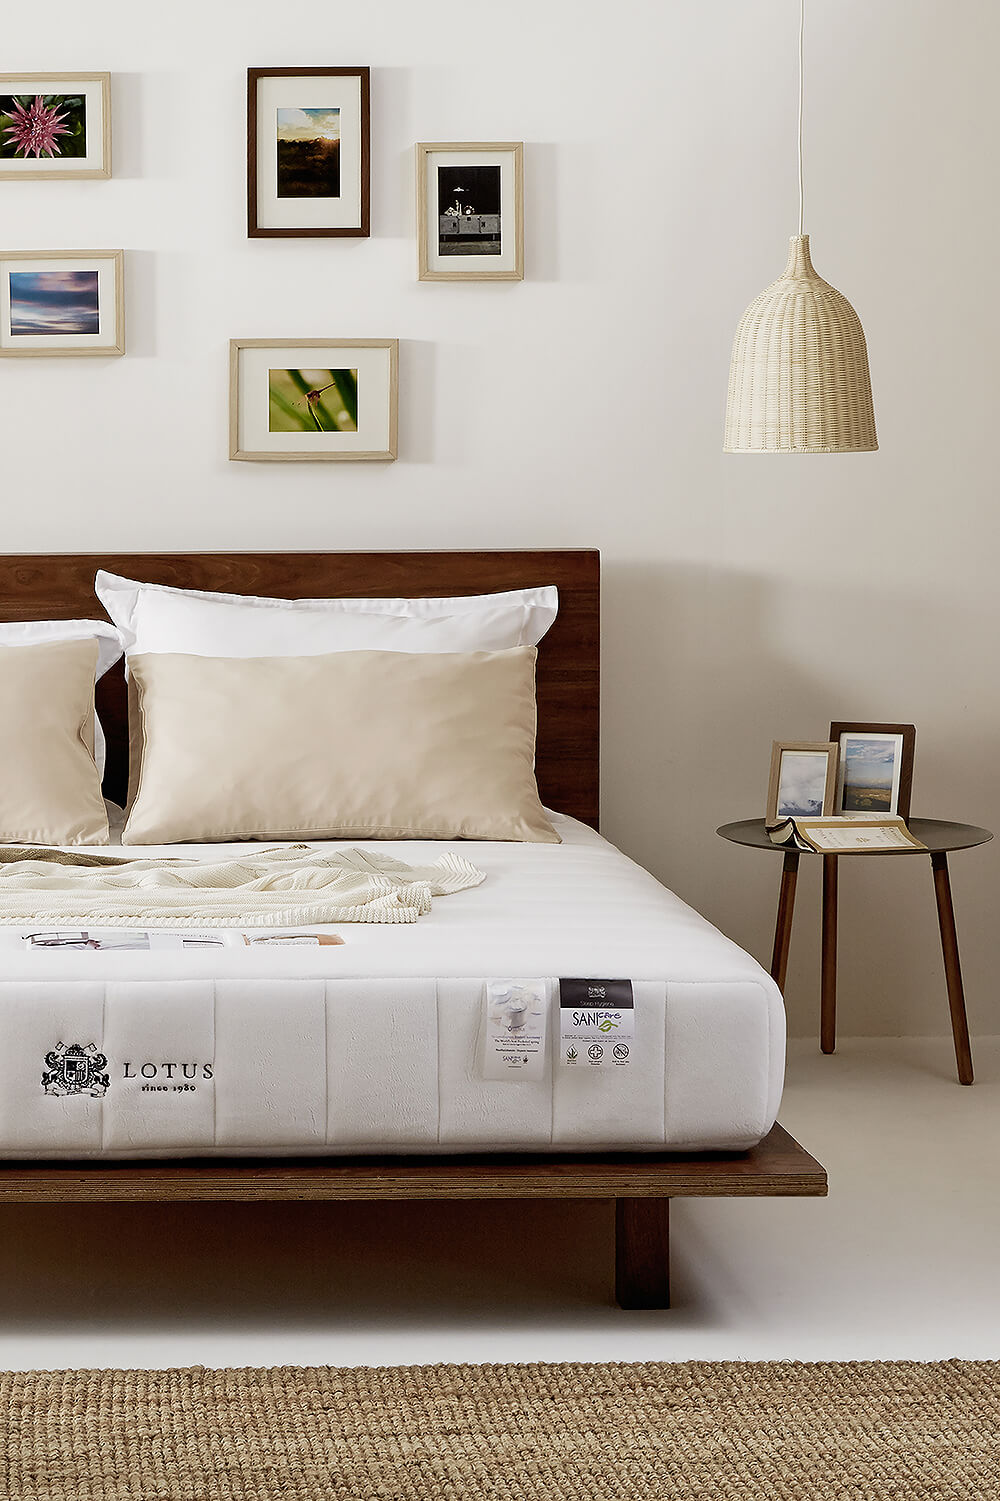 Lotus Mattress O-Season Plus